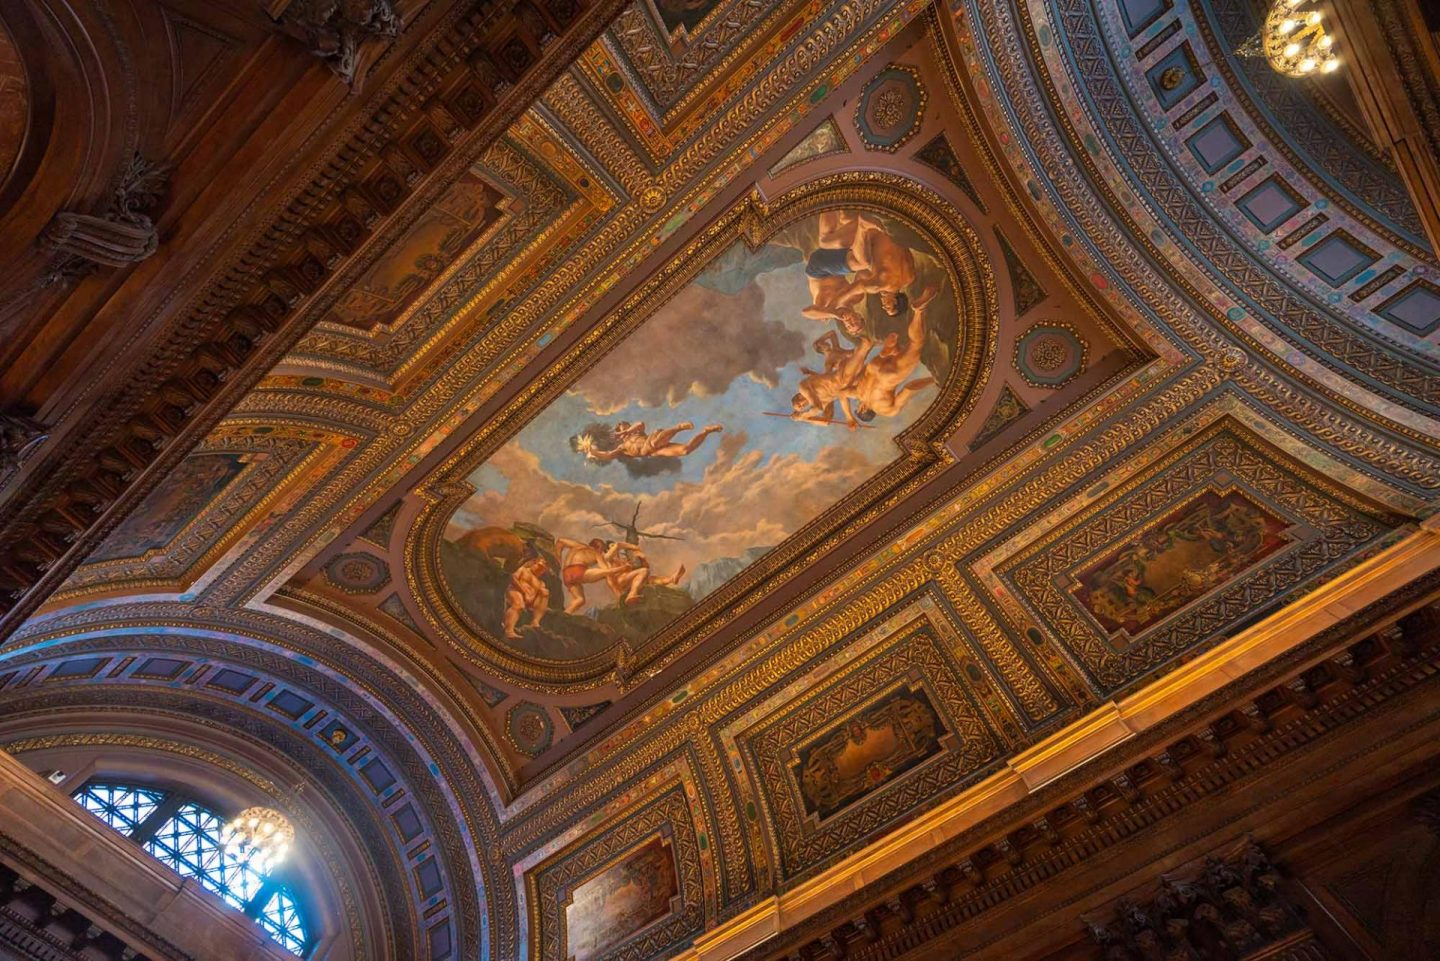 Looking up at The New York Public Library.